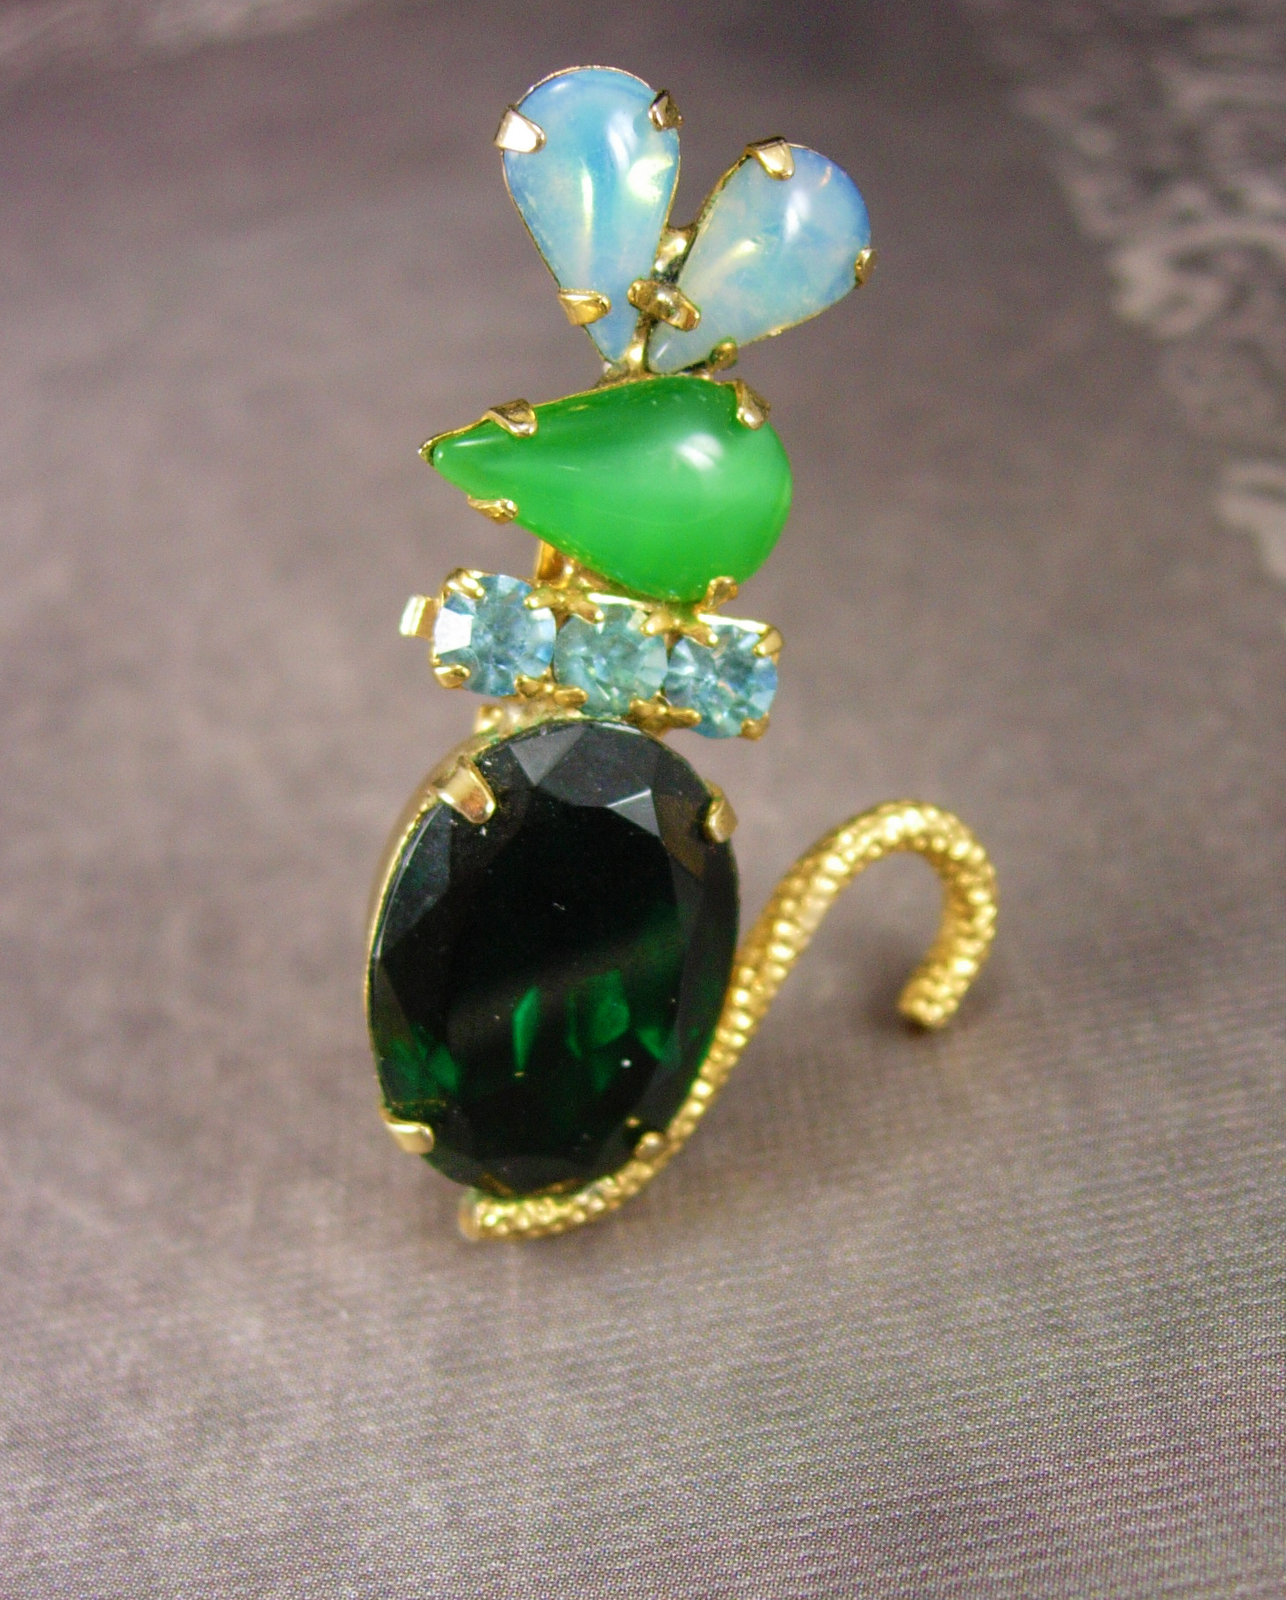 Primary image for Whimsical MOUSE Brooch Jelly belly Vintage Rhinestone Mice Jeweled green Figural